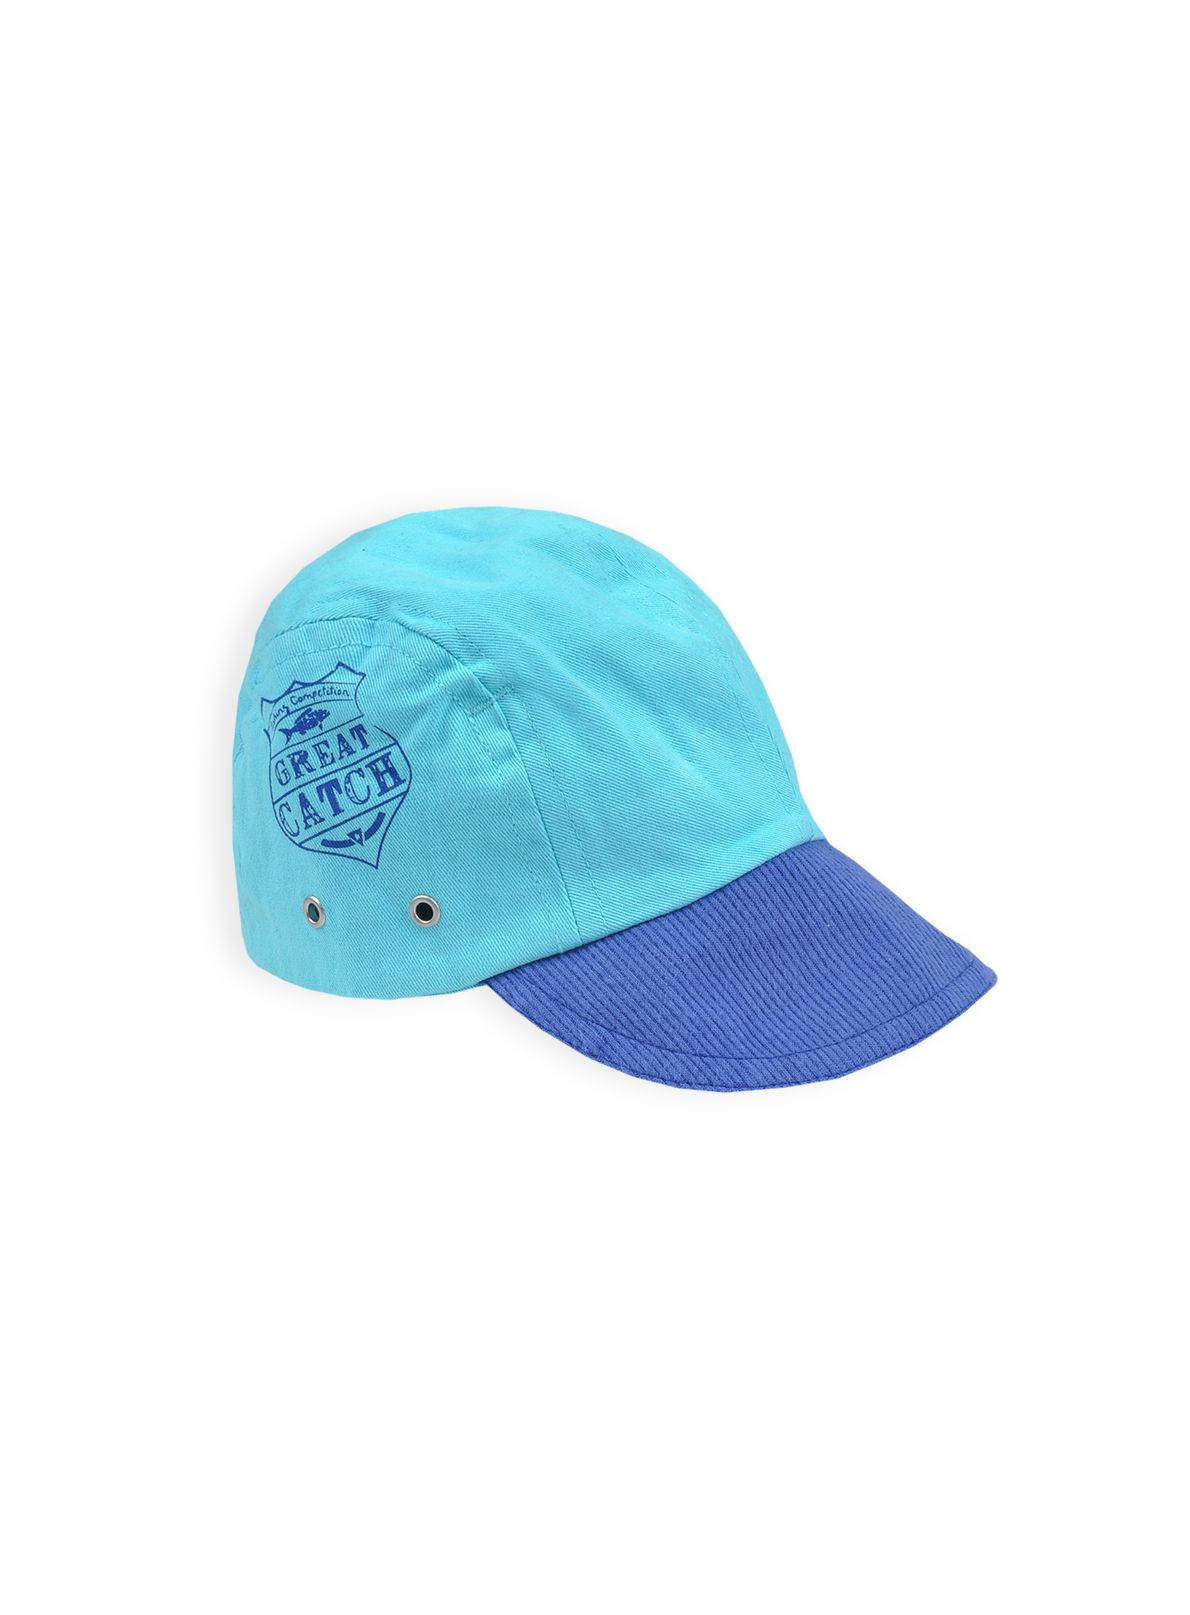 Boys canvas cap with print